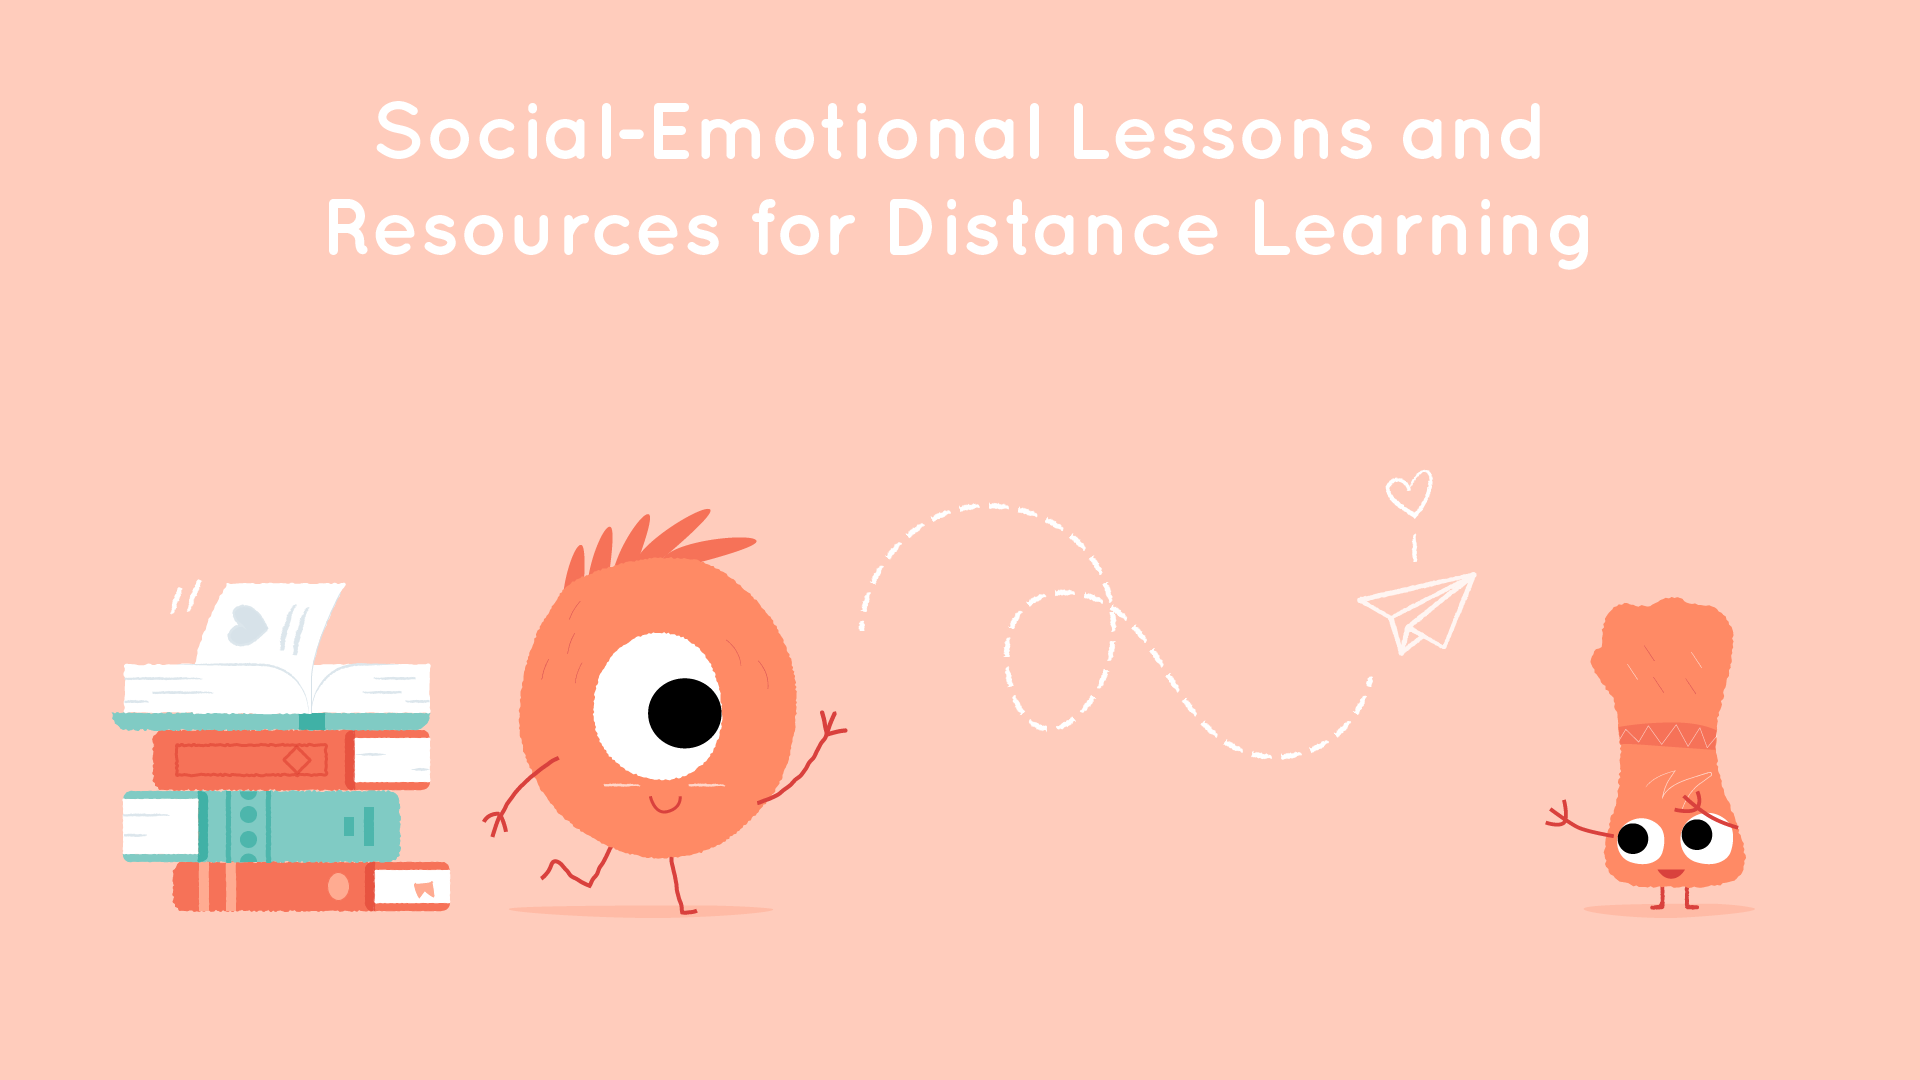 4 Weeks Of Sel Lessons And Activities For Distance Learning Lalilo Blog - 22+ Social Emotional Emotions Worksheets For Kindergarten Pdf PNG